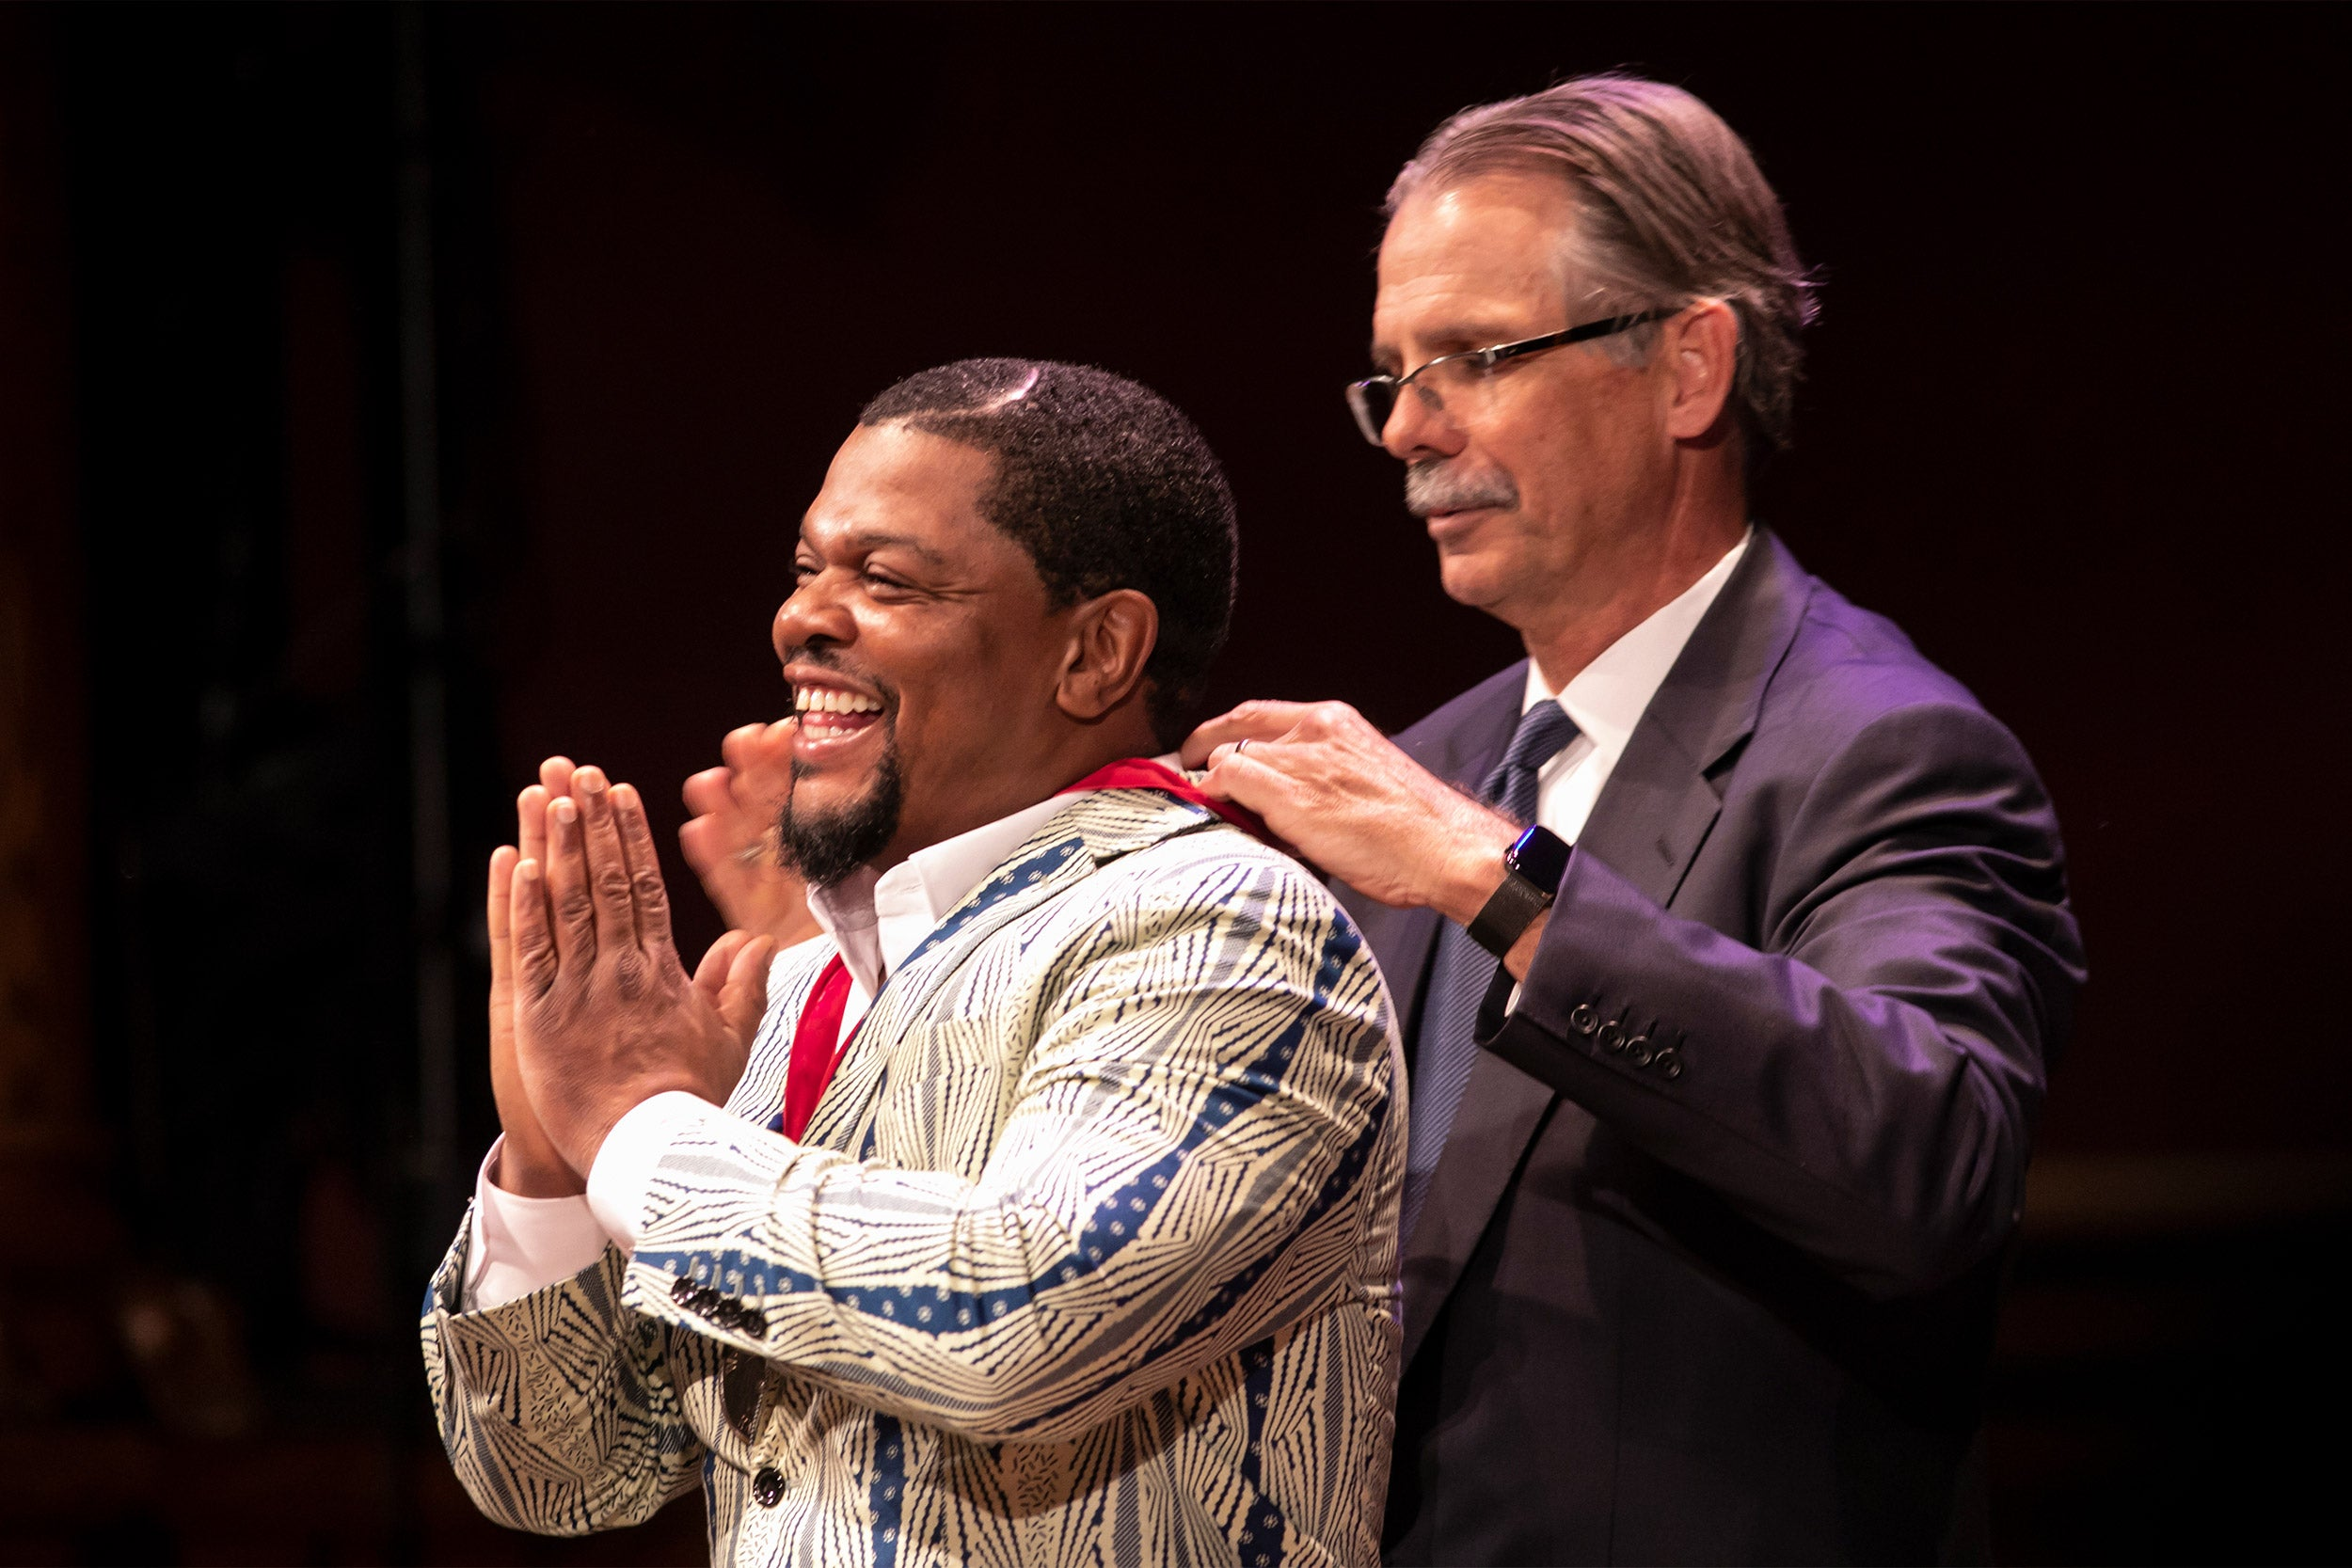 Glenn Hutchins presents the DuBois medal to artist Kehinde Wiley